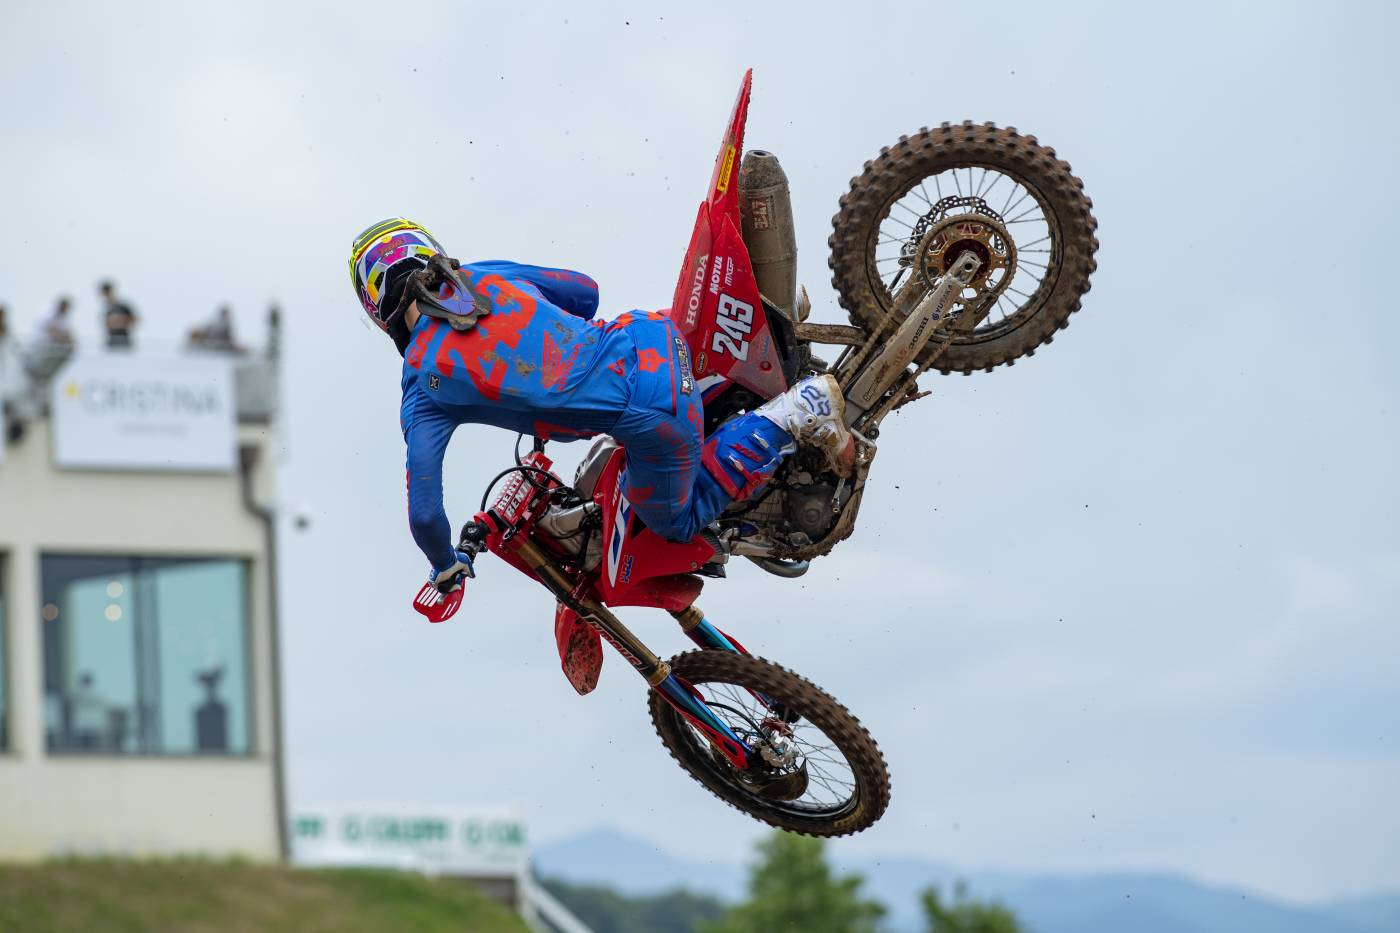 Tim Gajser and Team HRC retain the World Championship lead in Italy